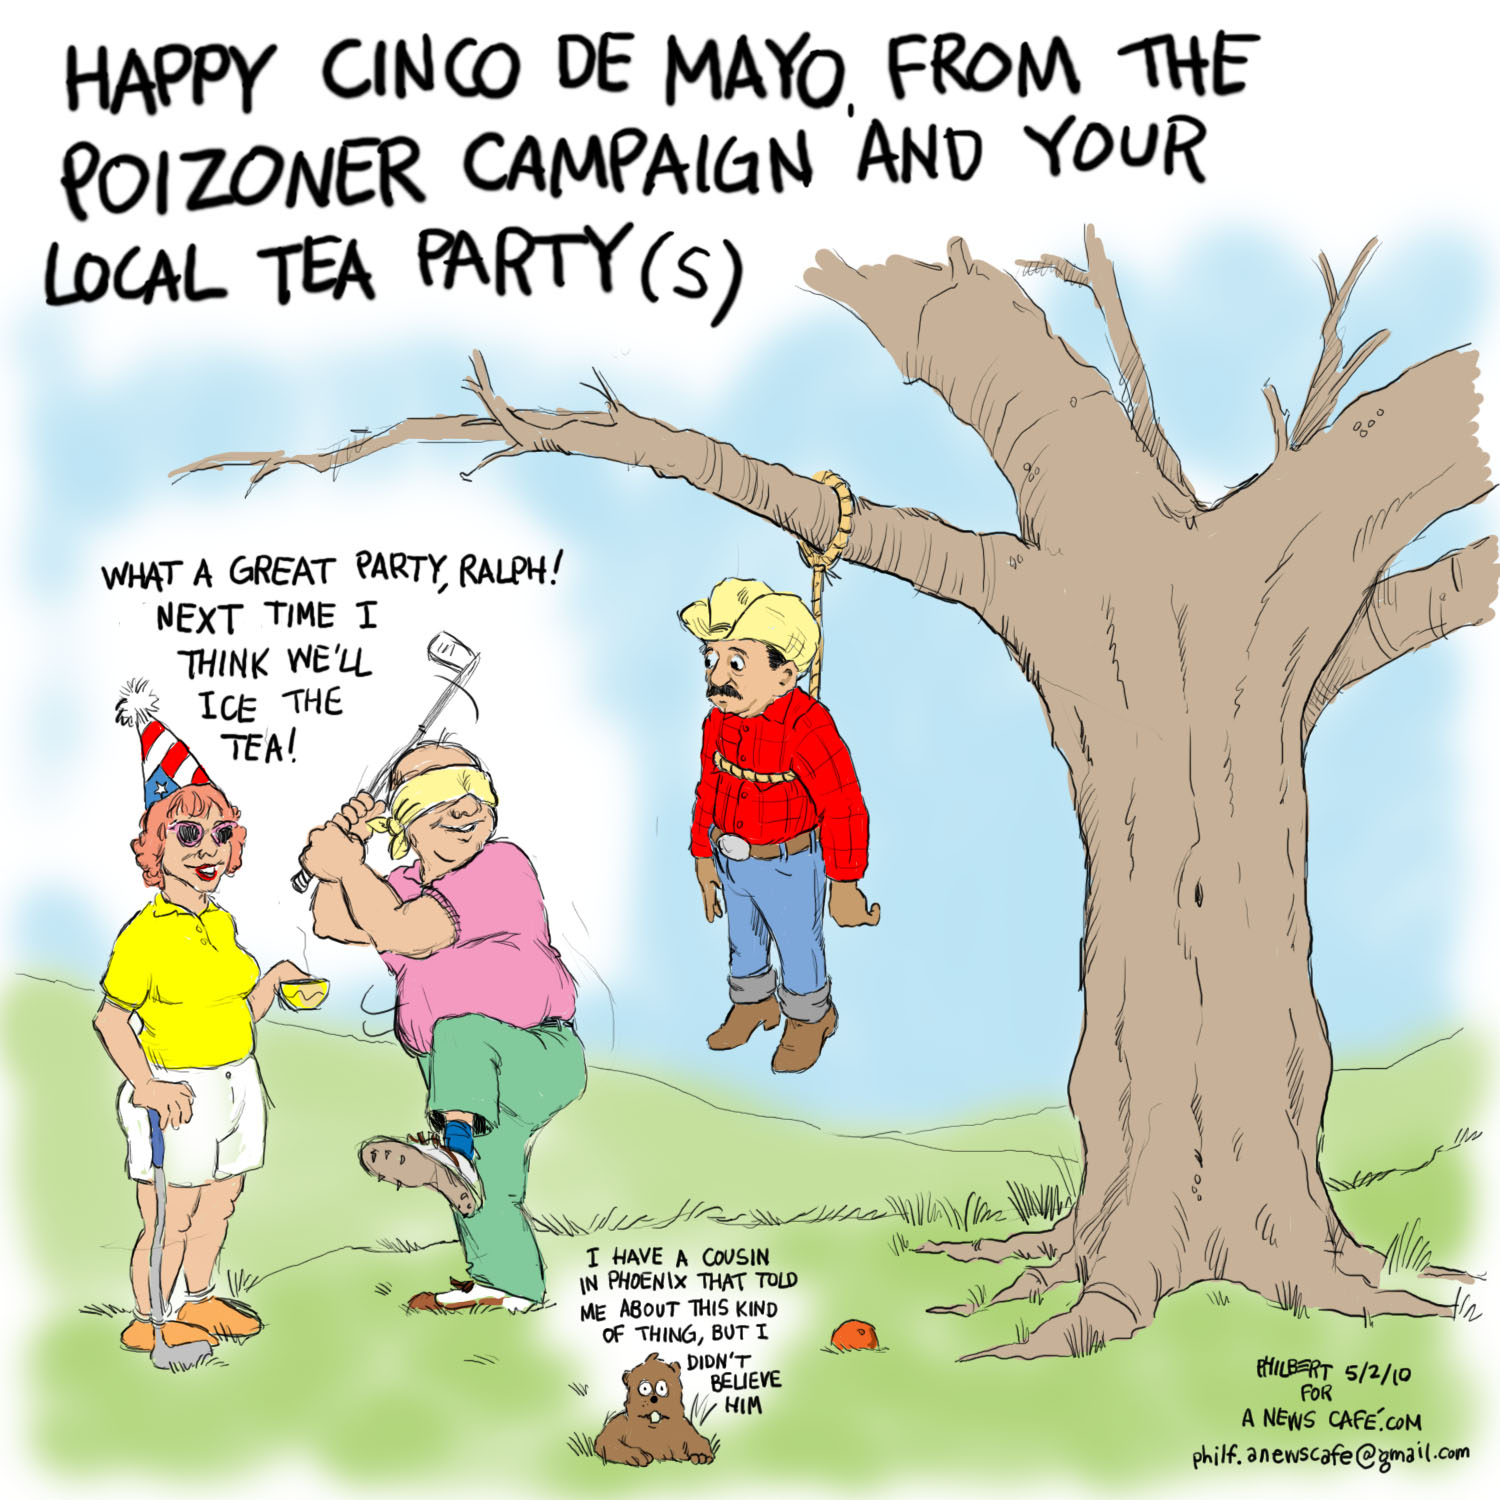 Mayo funny de cinco pictures